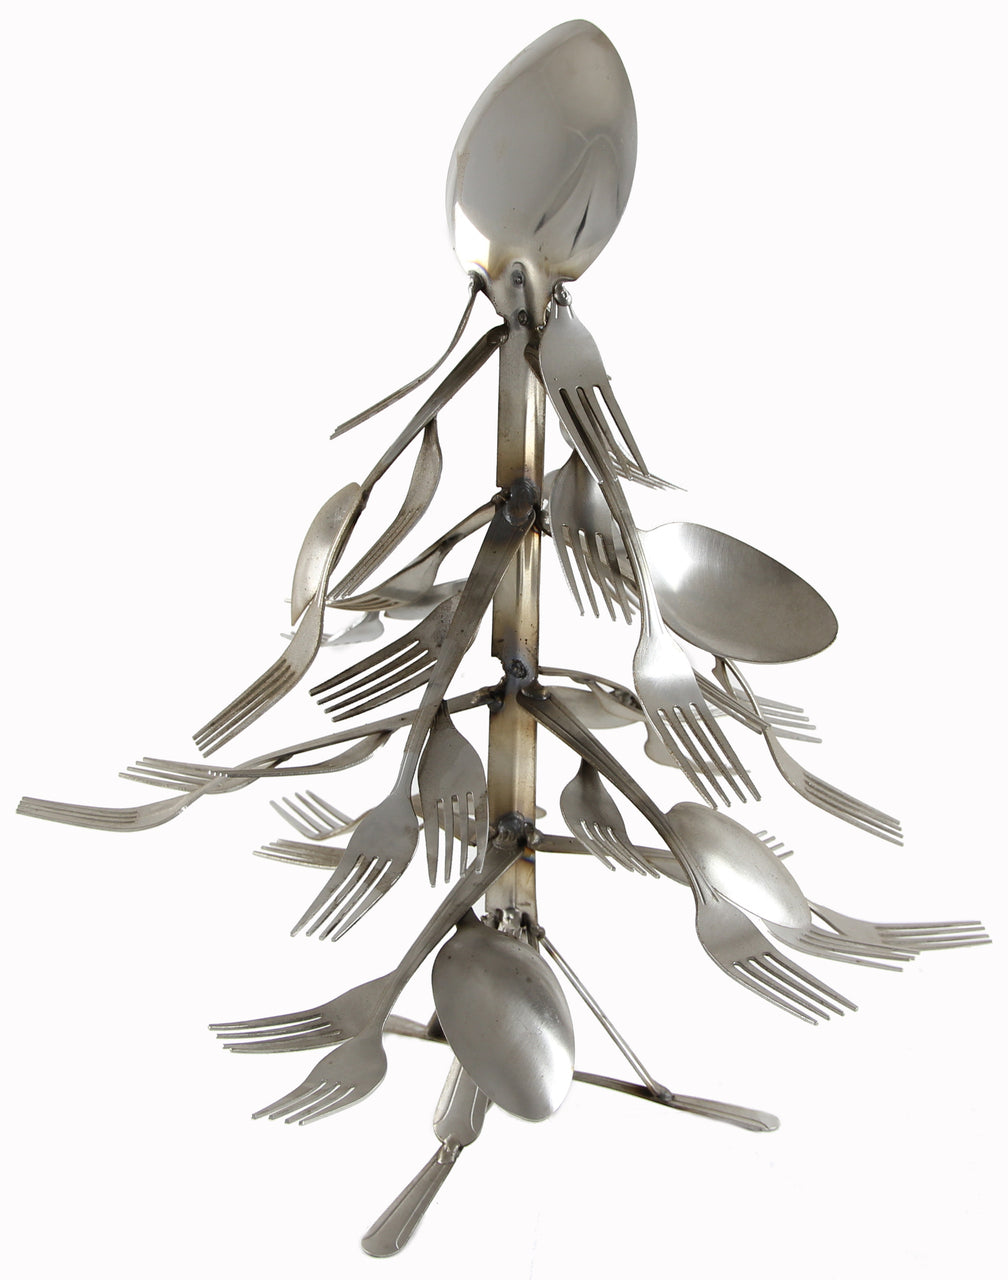 Small Christmas Tree Spoon and Fork Art